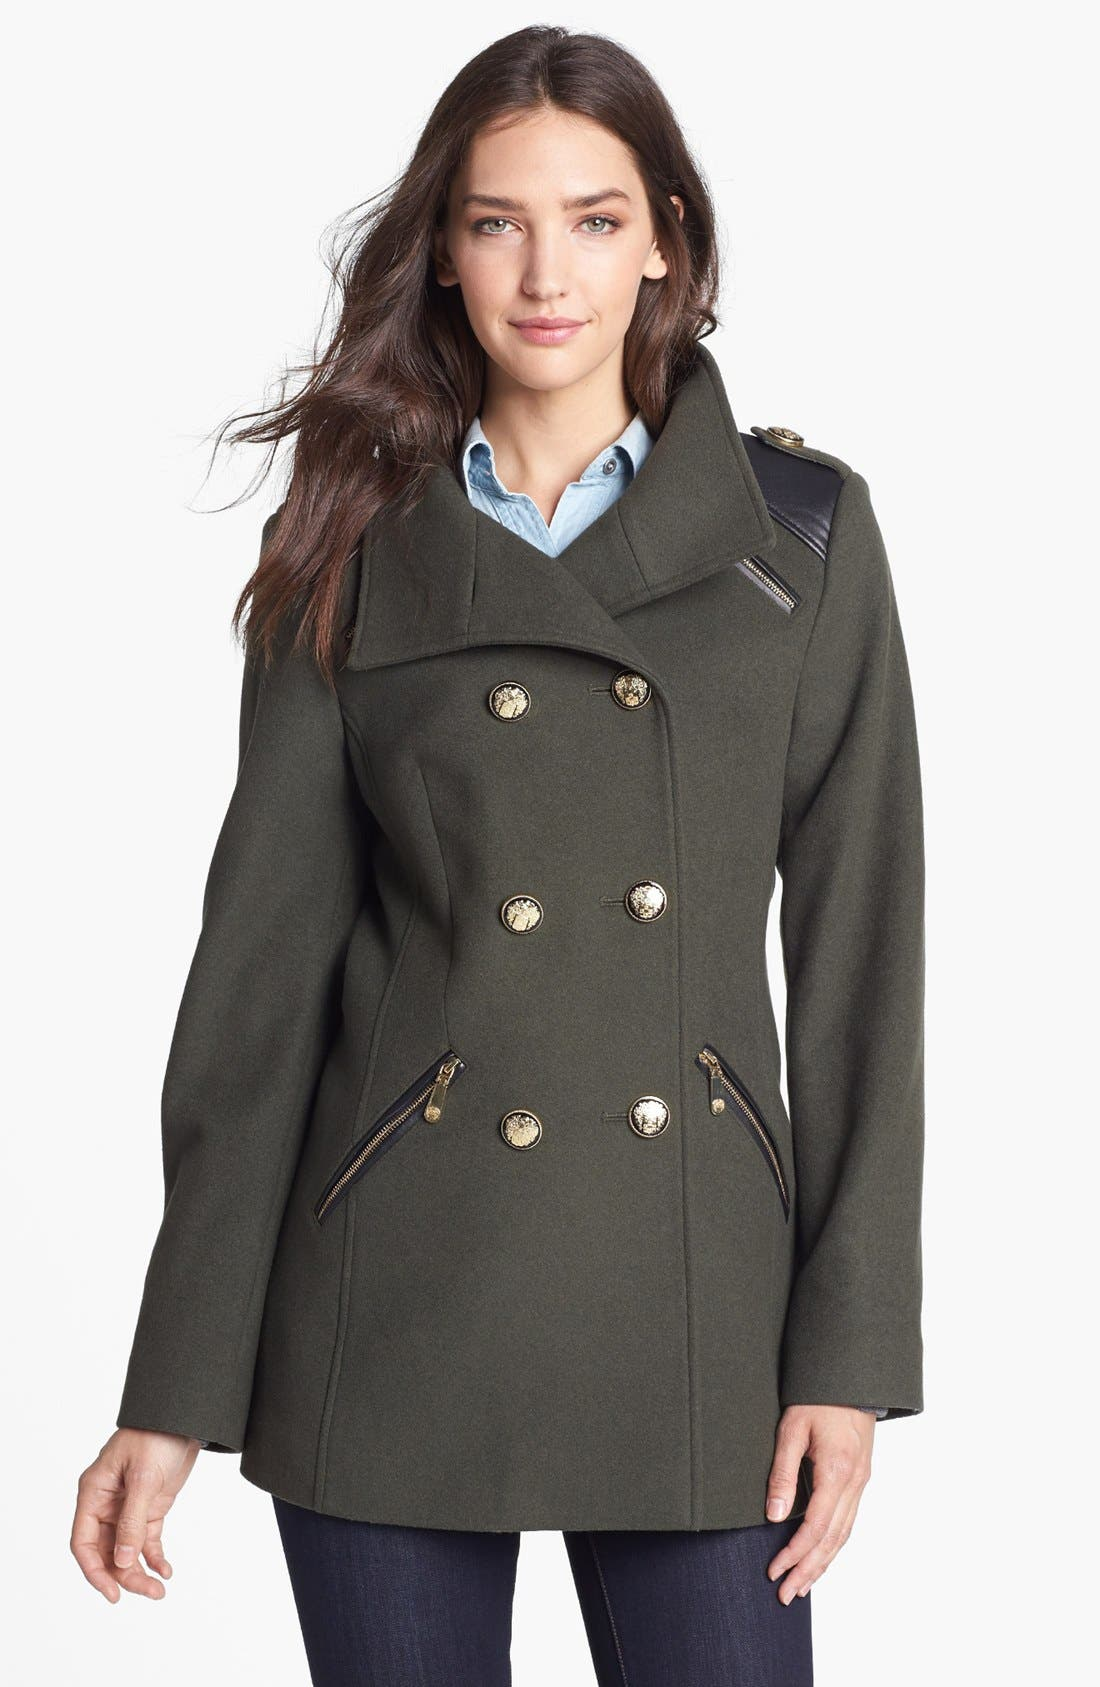 Alternate Image 1 Selected - Vince Camuto Wool Blend Military Peacoat